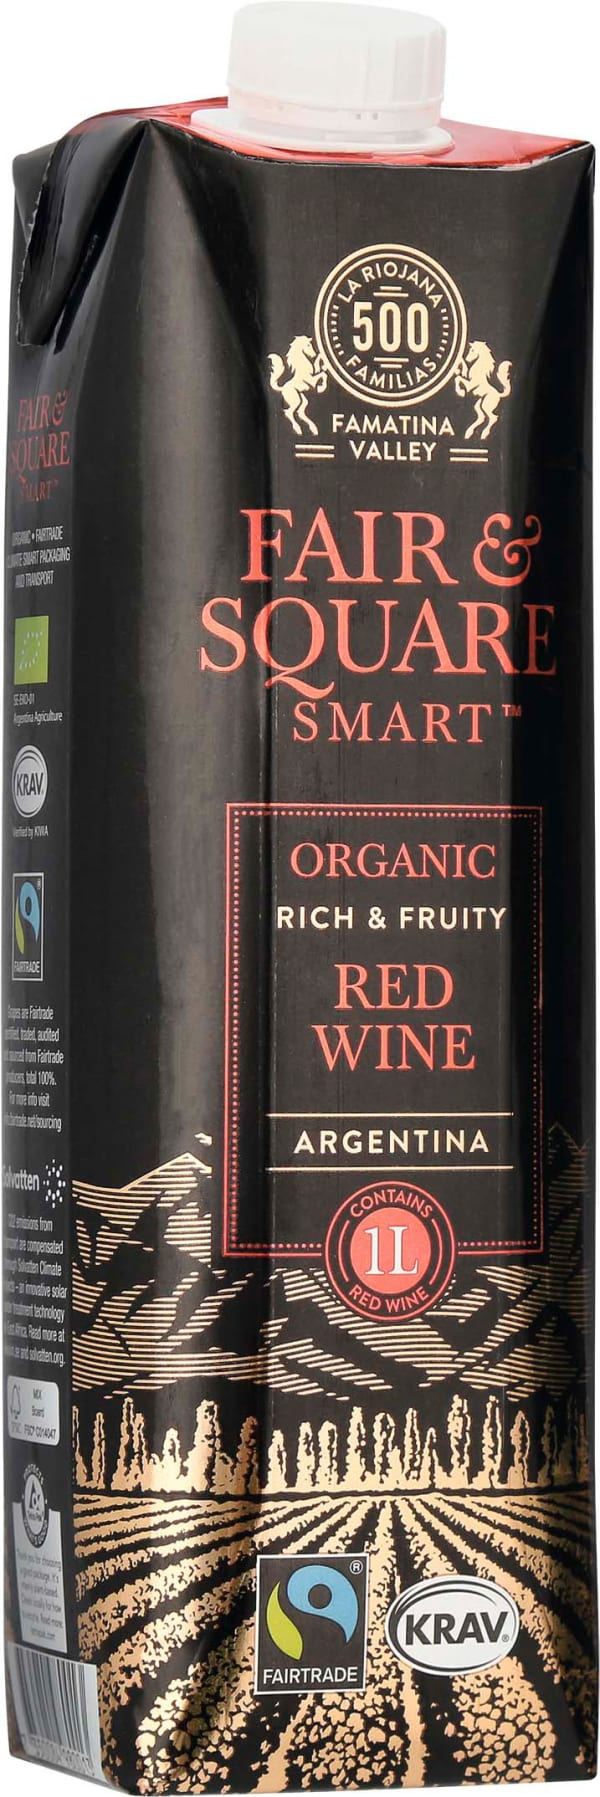 Fair & Square Red 2016 carton package